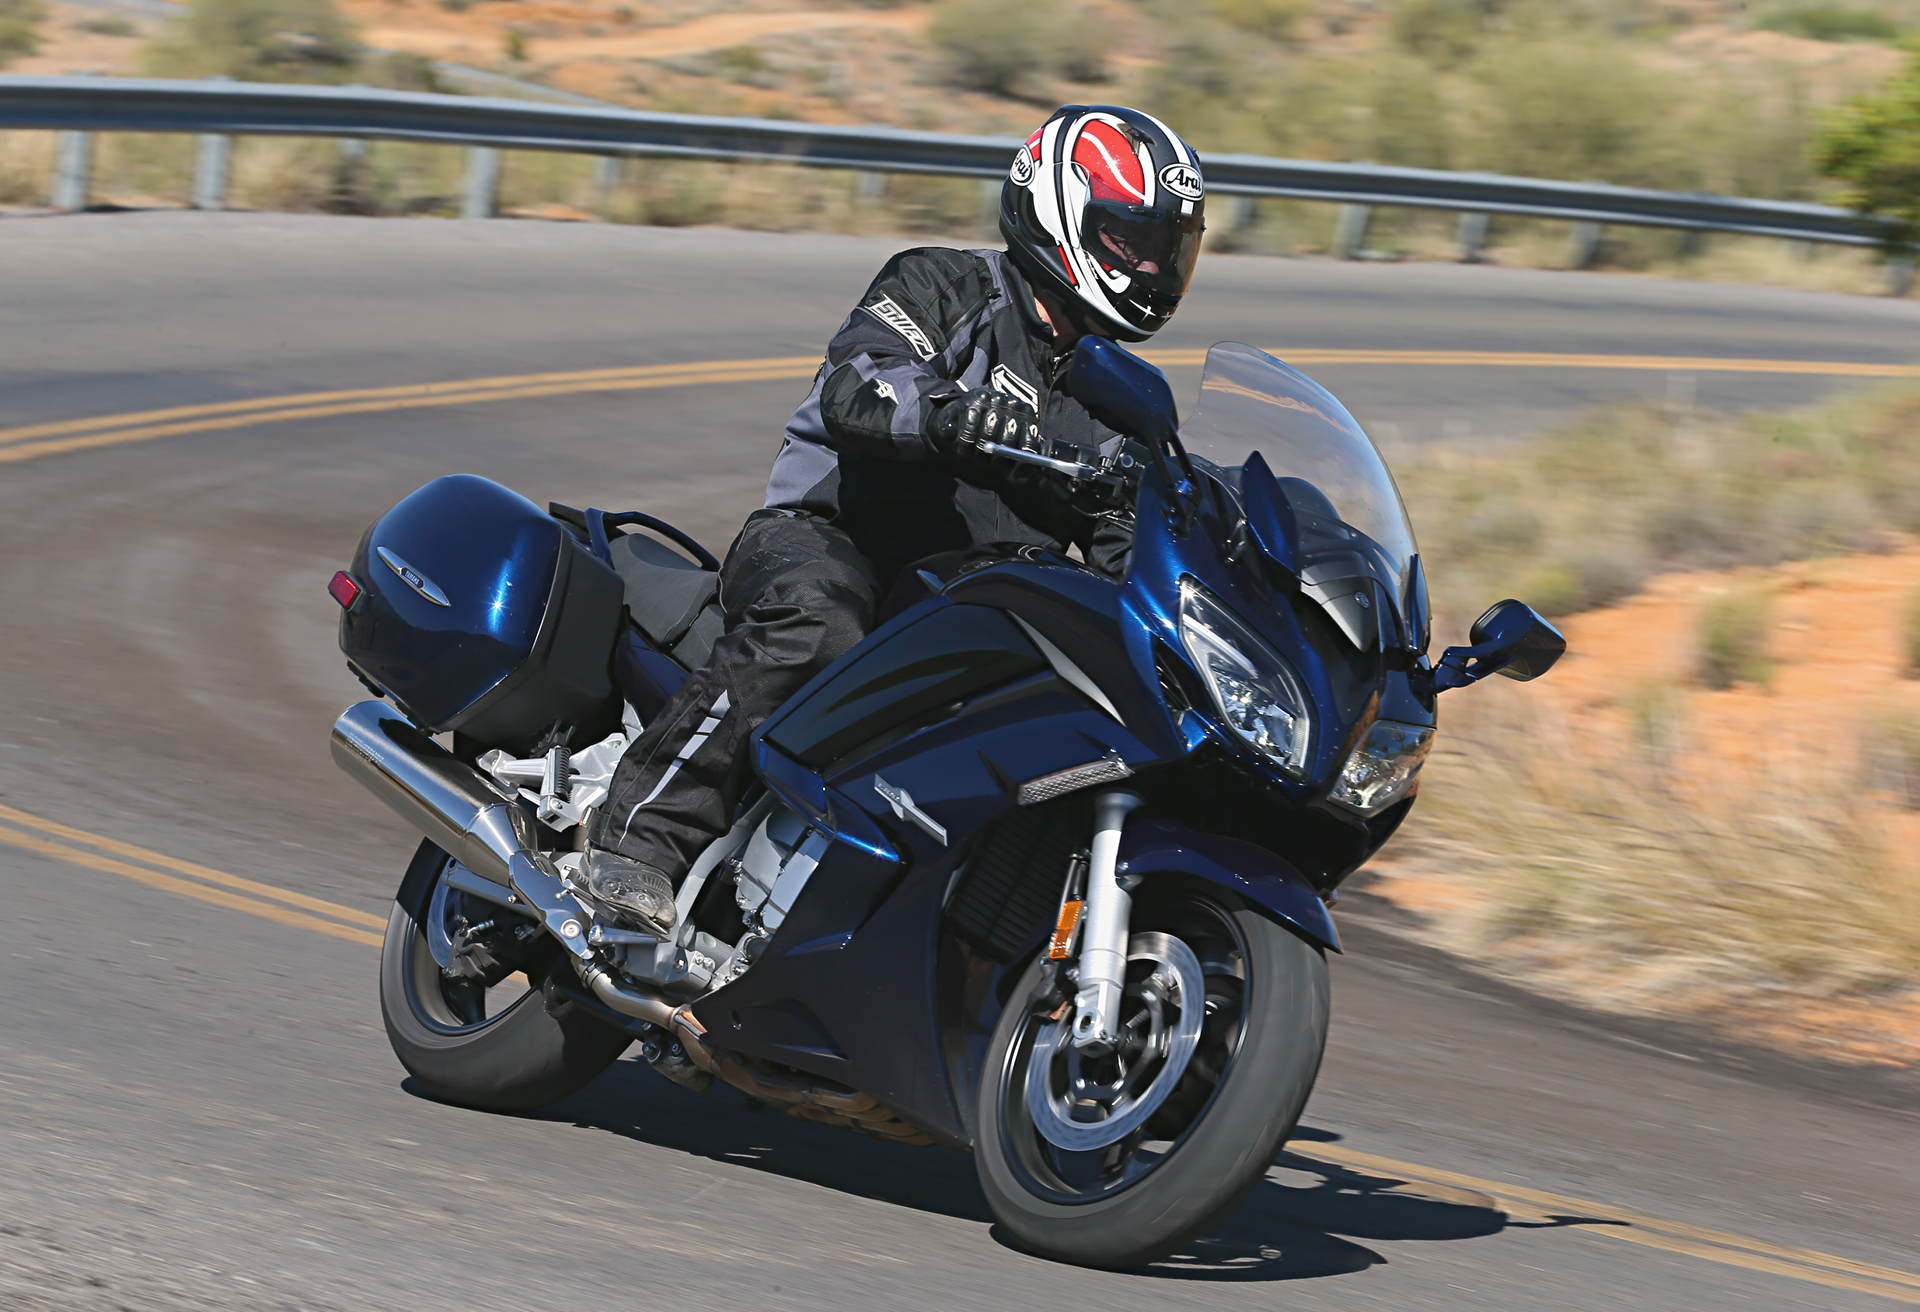 Motorcycledaily Motorcycle News Editorials Product Reviews And Bike